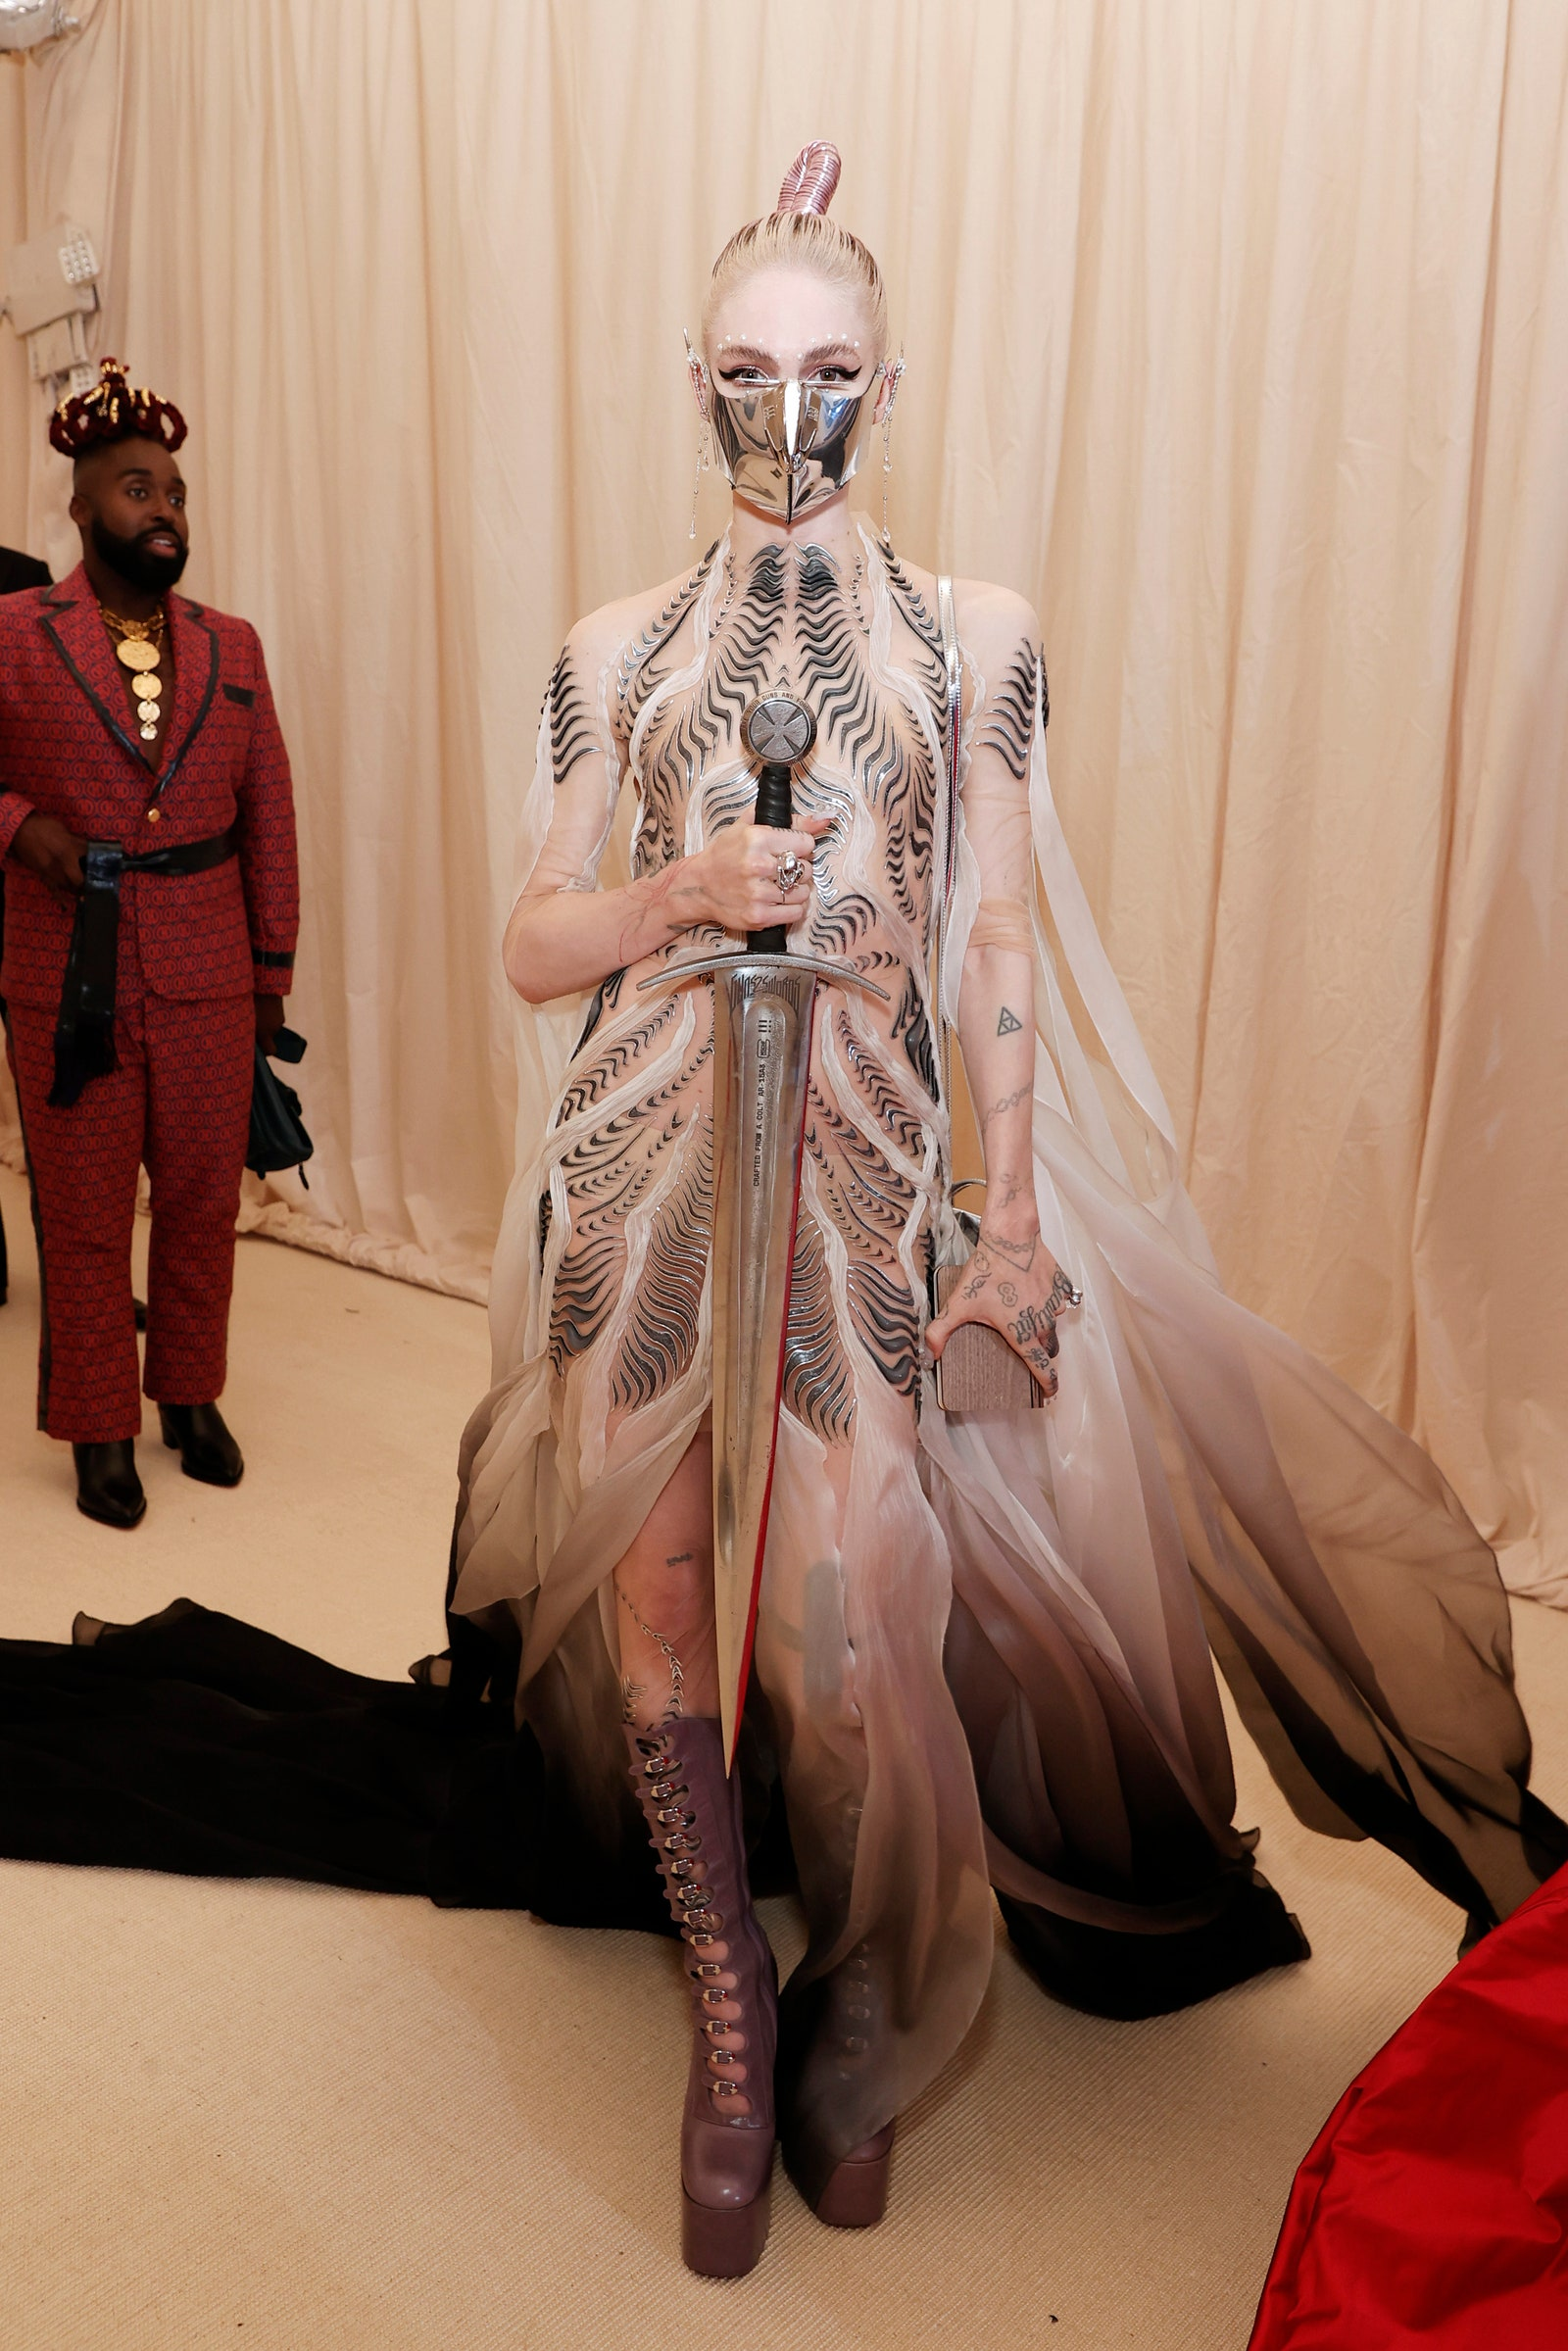 10 Looks That Ruled The Red Carpet at Met Gala 2021